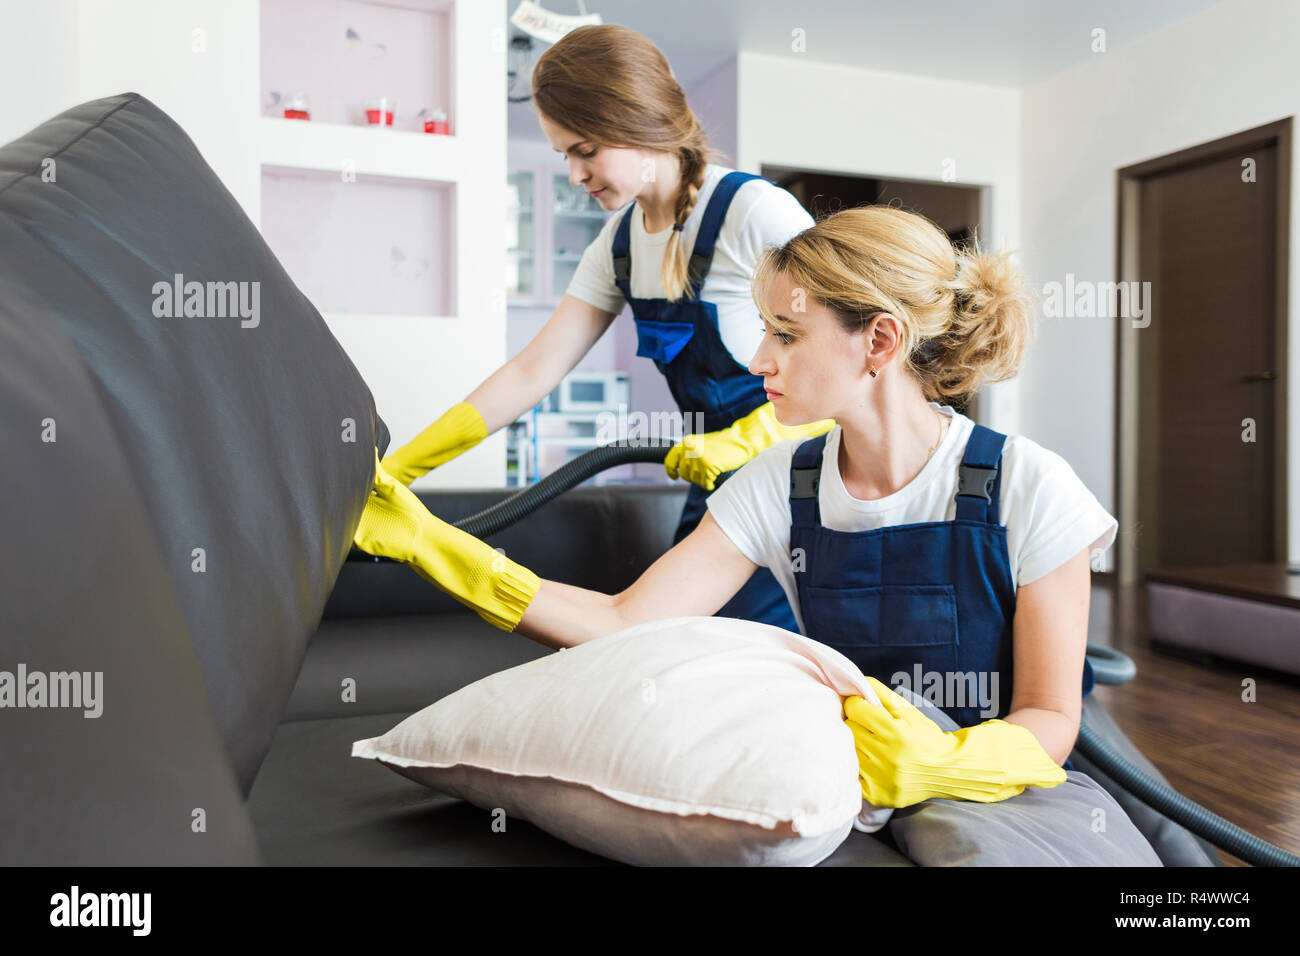 How To Dry Clean Sofa At Home Cleaning Service With Professional Equipment During Work